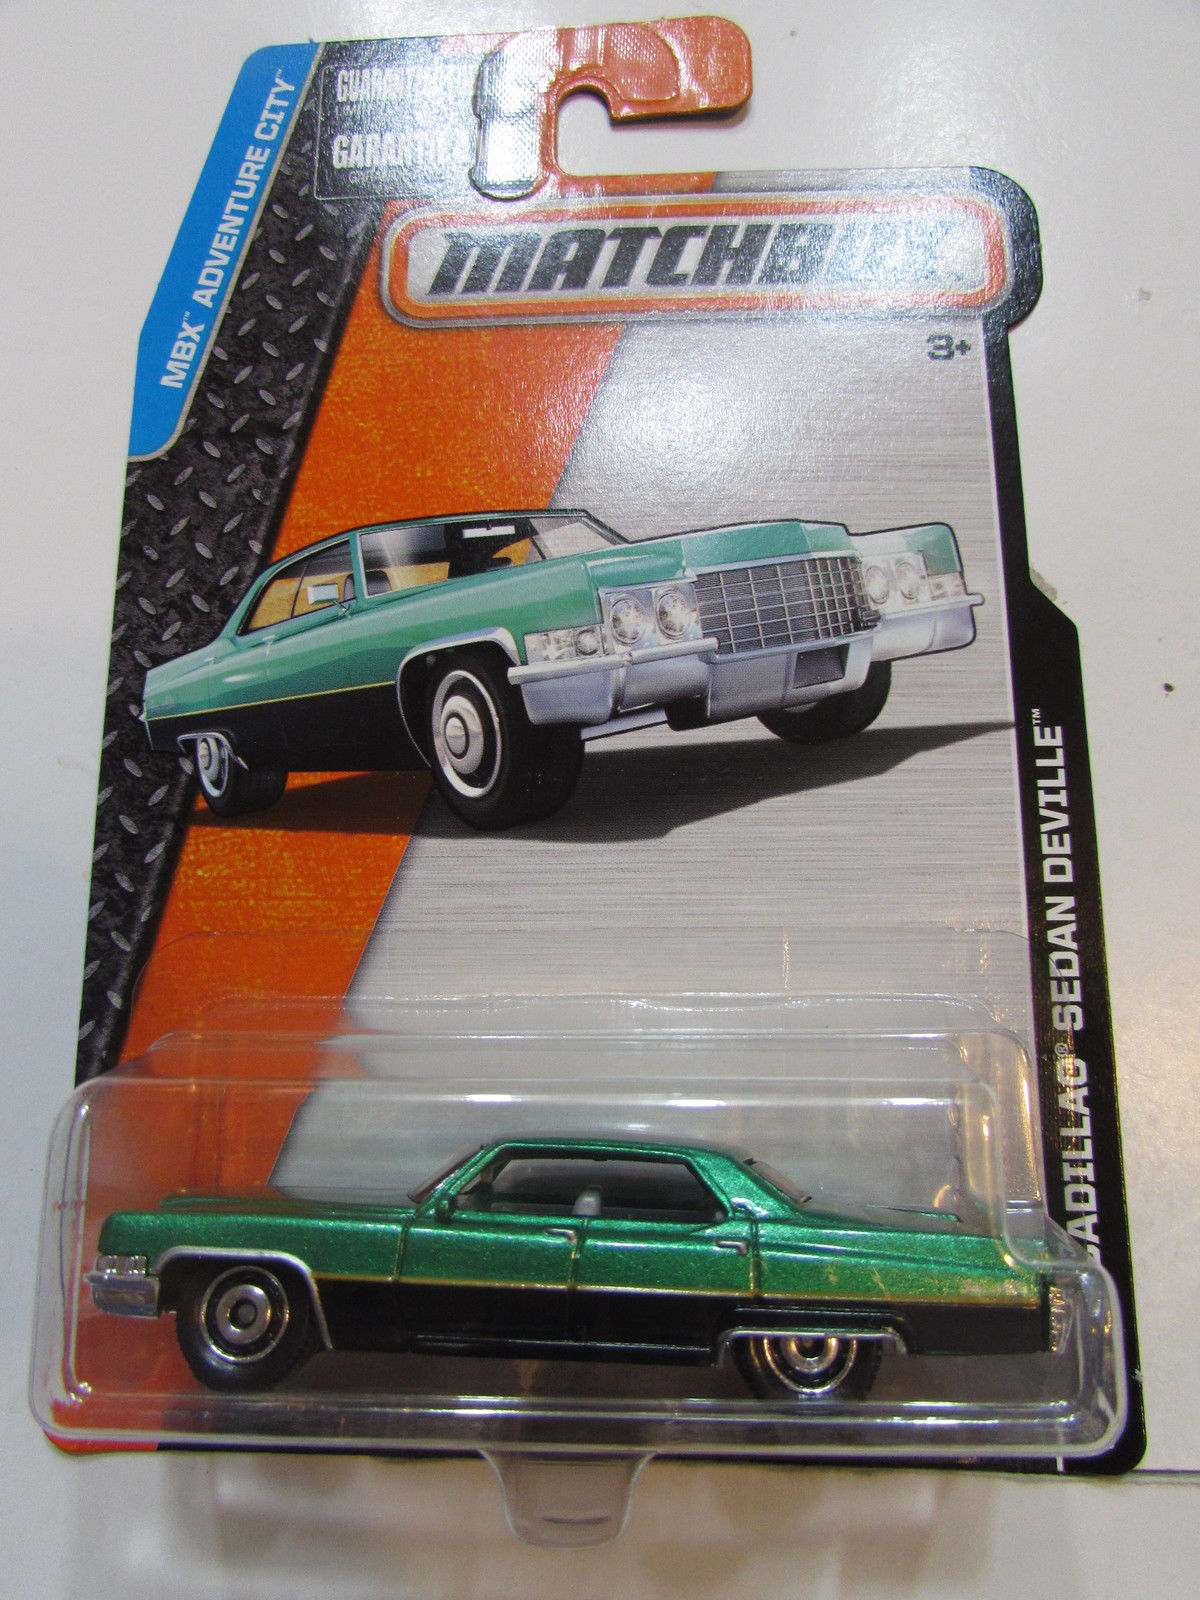 MATCHBOX 2015 MBX ADVENTURE CITY '69 CADILLAC SEDAN DEVILLE